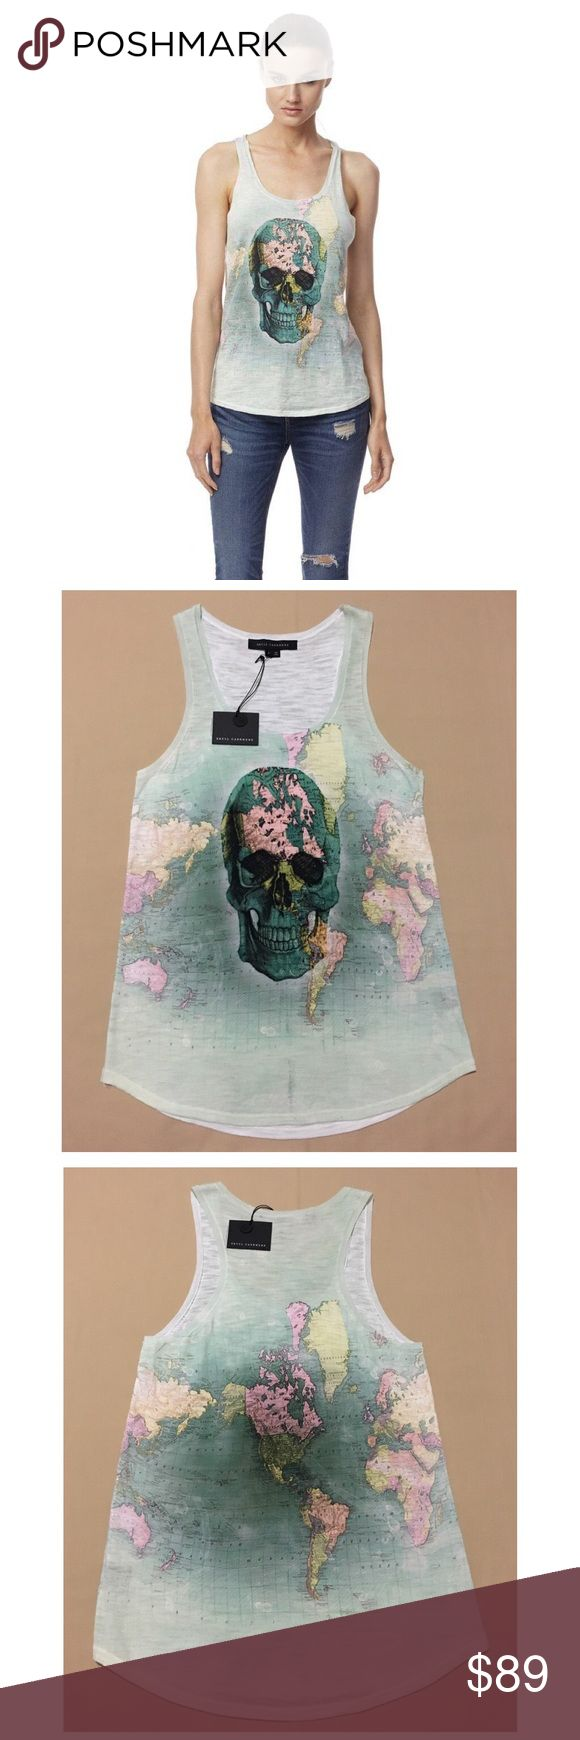 SKULL CASHMERE Justine Tank Top Retail: $196 (NWT) SKULL CASHMERE Justine Tank Top    Semi-sheer racerback tank is adorned with a skull print on the front. Finished with an acid wash effect of Green hues. Scoop neckline. Curved hem.    Limited Edition  • Size - Small  • 100% - Authentic  • Fabric - 100% Cotton  • Color - Multi Color   • Retail - $196  • Fit: True to size. Model is wearing size small.   We Ship Same Day Or Next!  Check Out My Other Items For Exclusives Deals On Clothing…